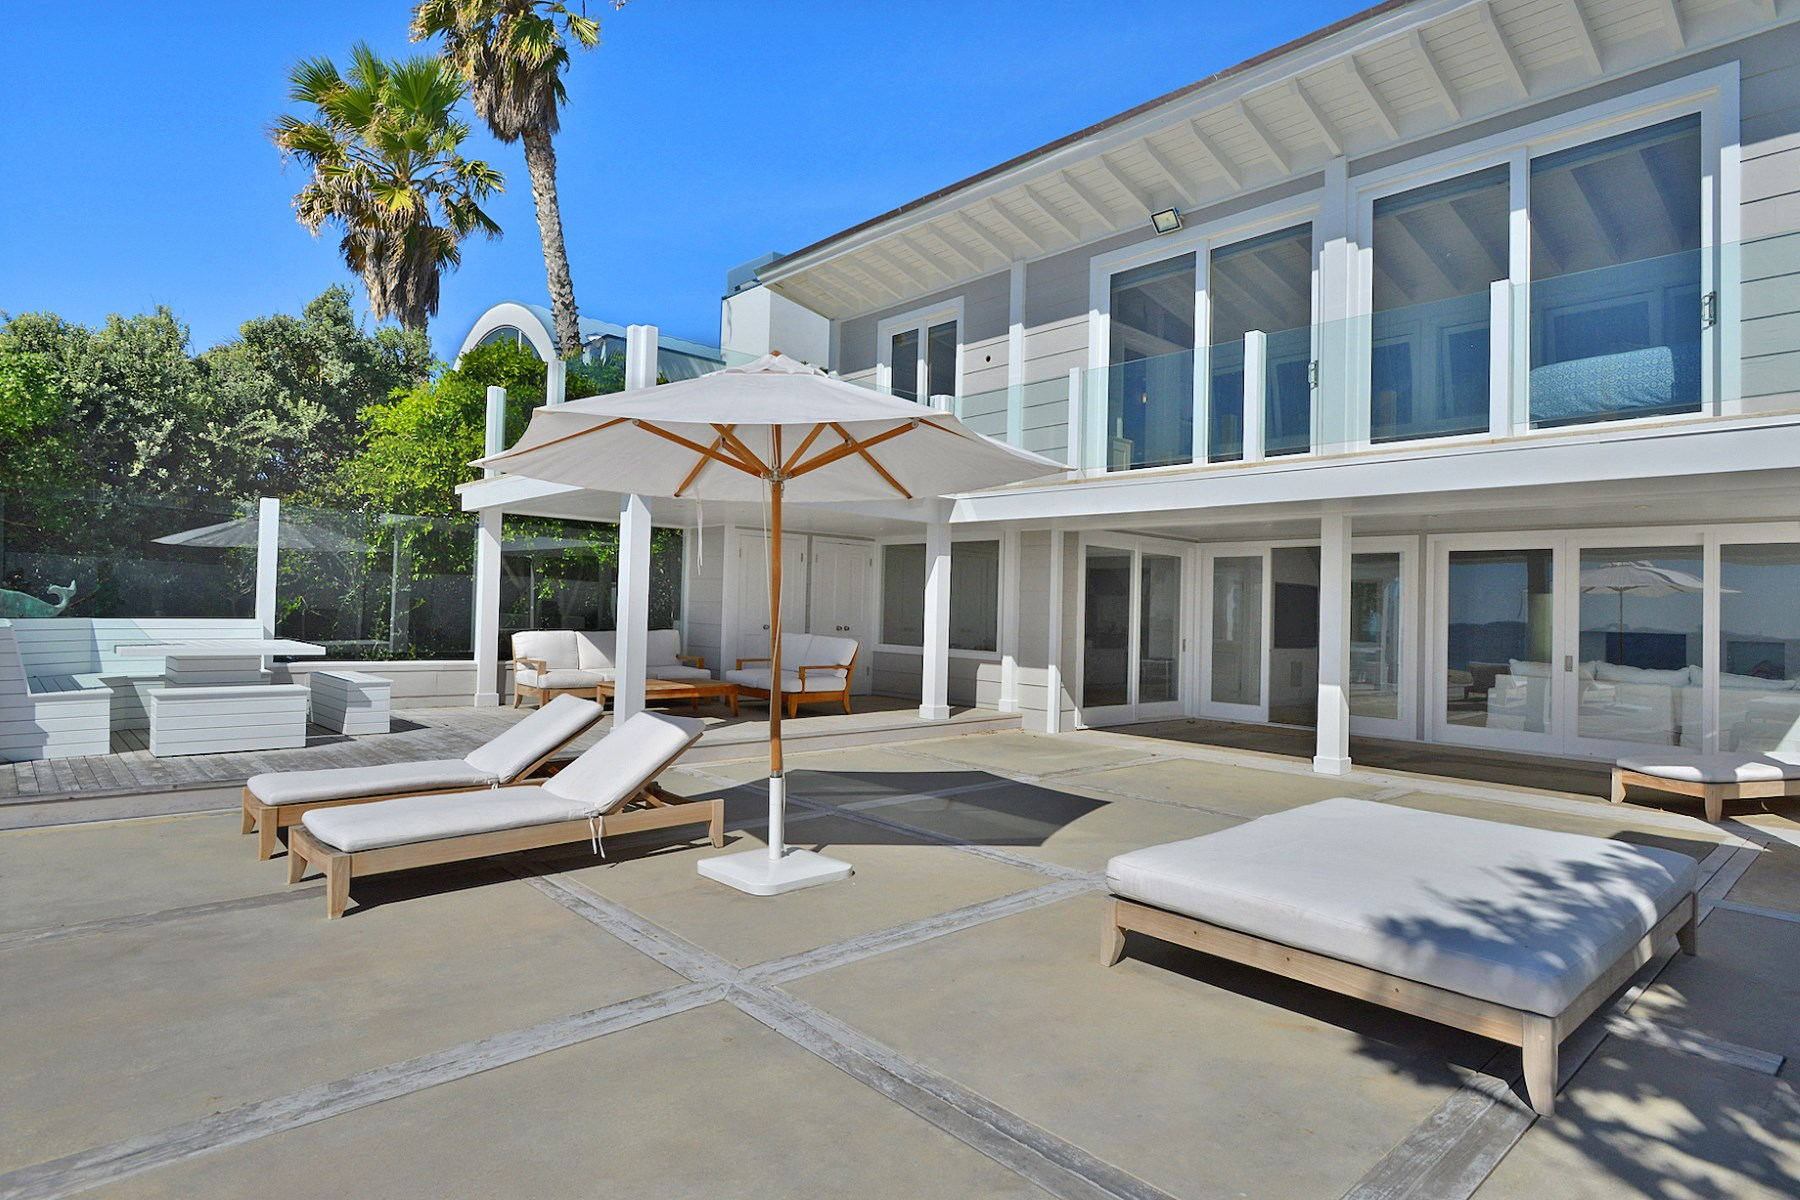 Villa per Affitto alle ore Wallace Neff Broad Beach Lease 31310 Broad Beach Rd Malibu, California, 90265 Stati Uniti